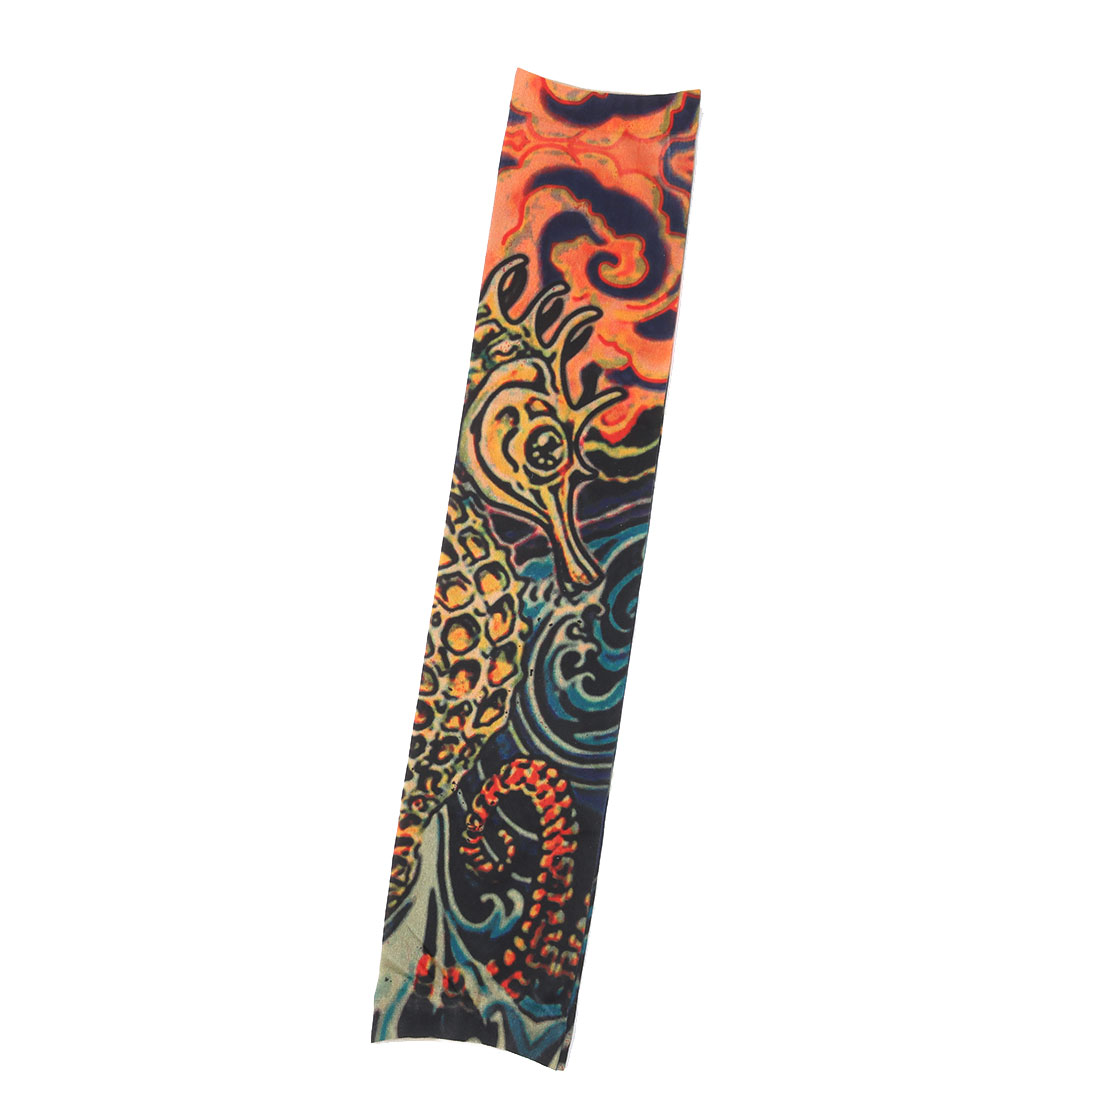 Outdoor Nylon Scales Print Stretchy Hiking Cleaning Arm Cover Sun Protection Sleeve